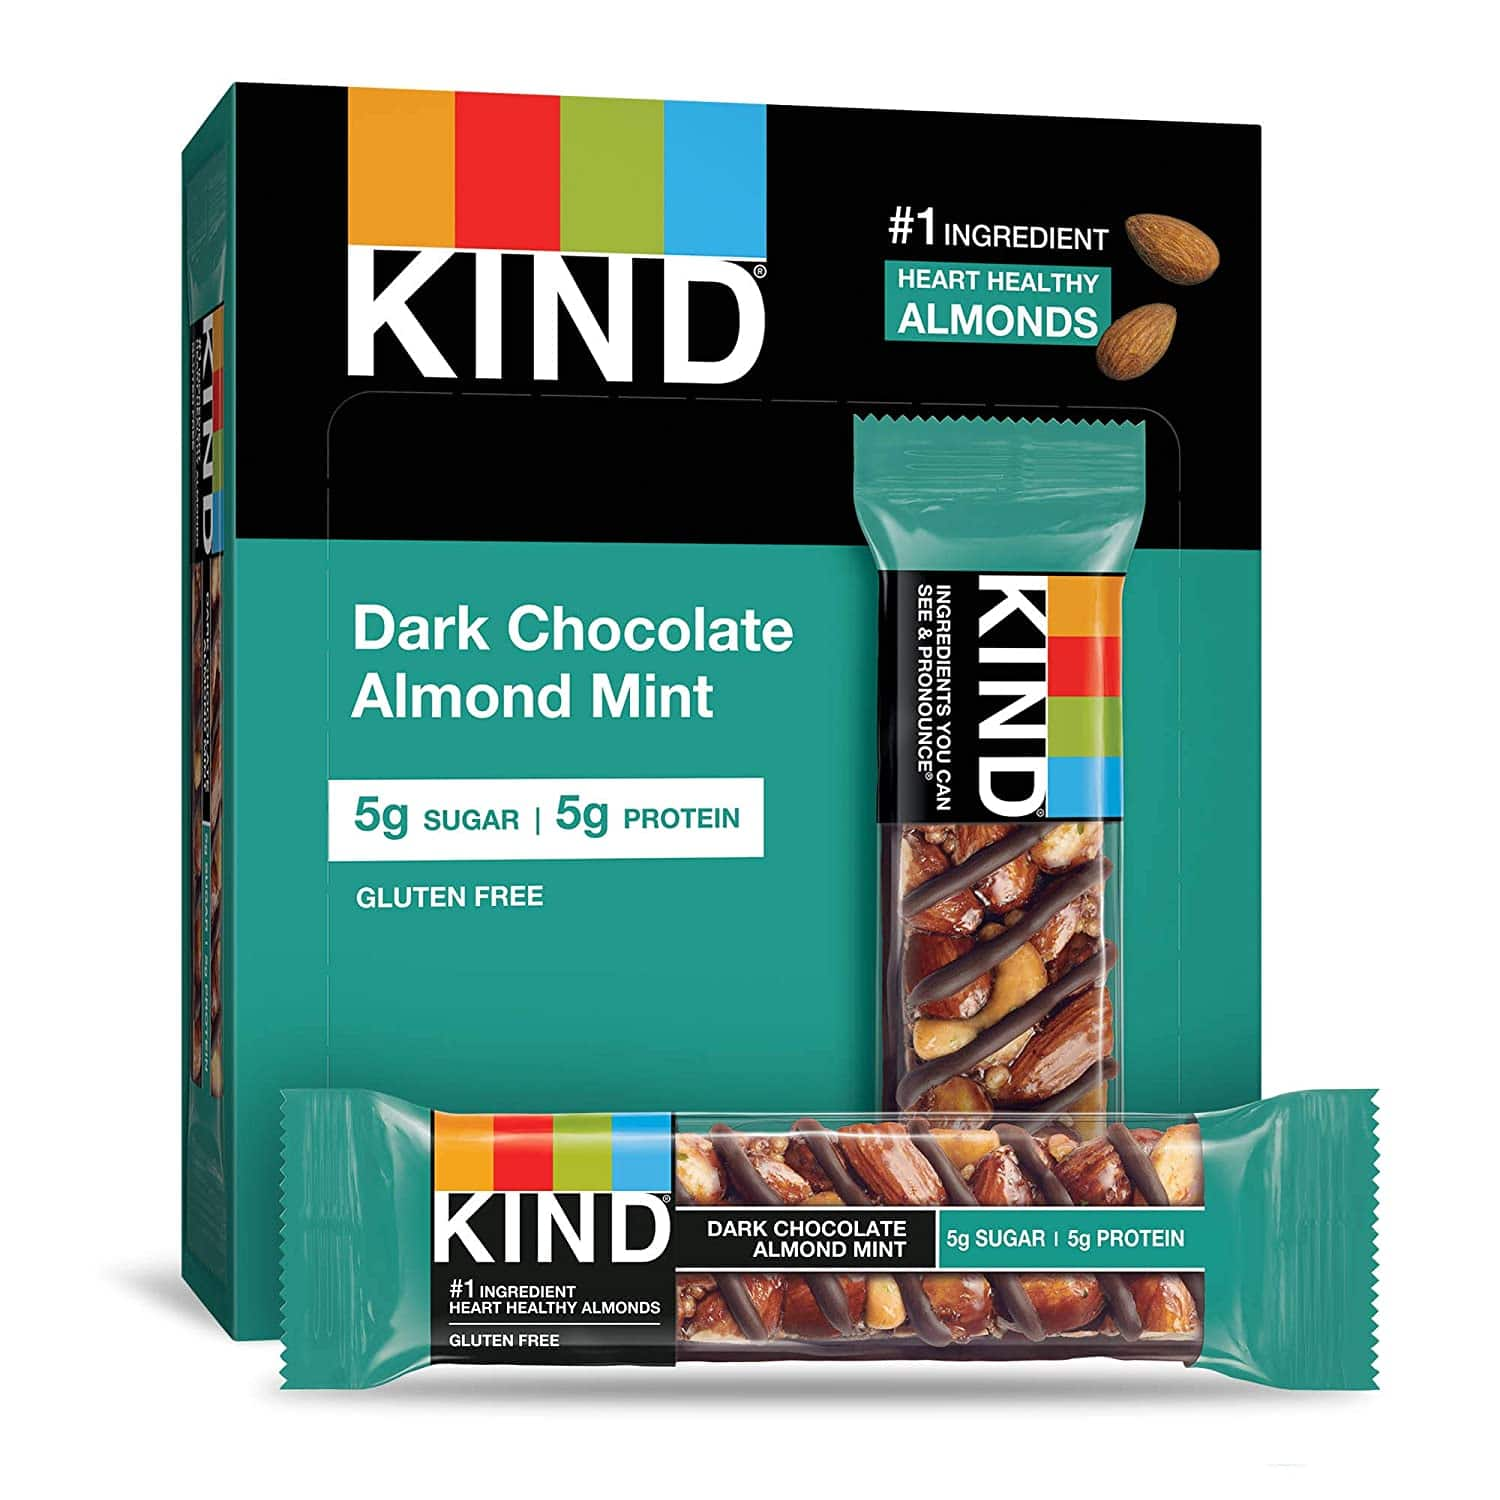 12-Count 1.4-Oz KIND Bars (Dark Chocolate Almond Mint)